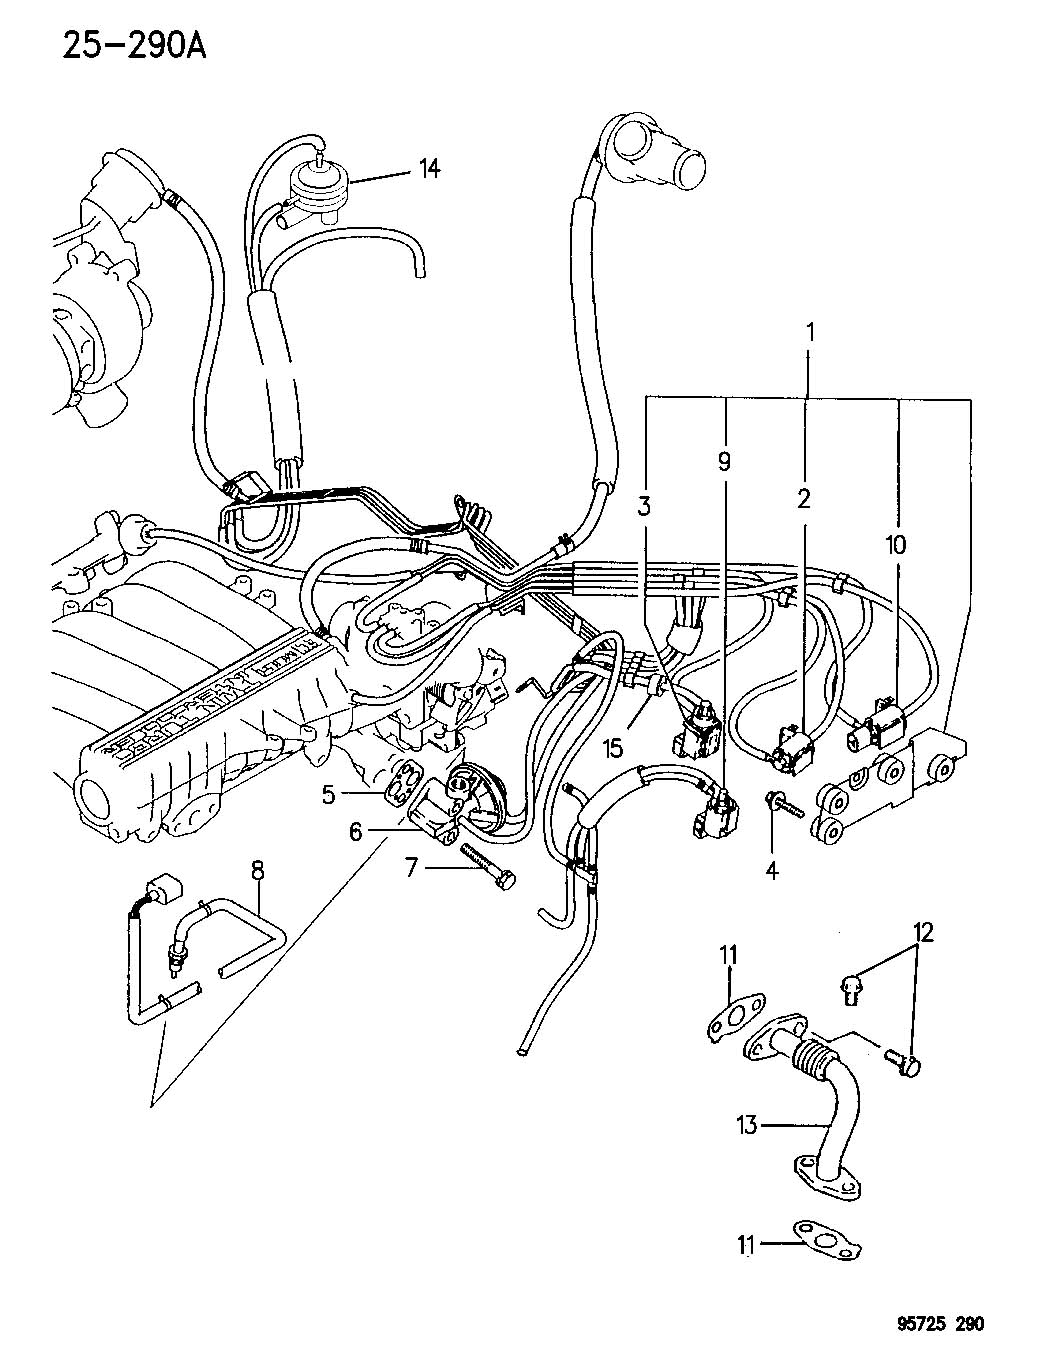 Service manual [2003 Mercury Sable Dash Removal Diagram